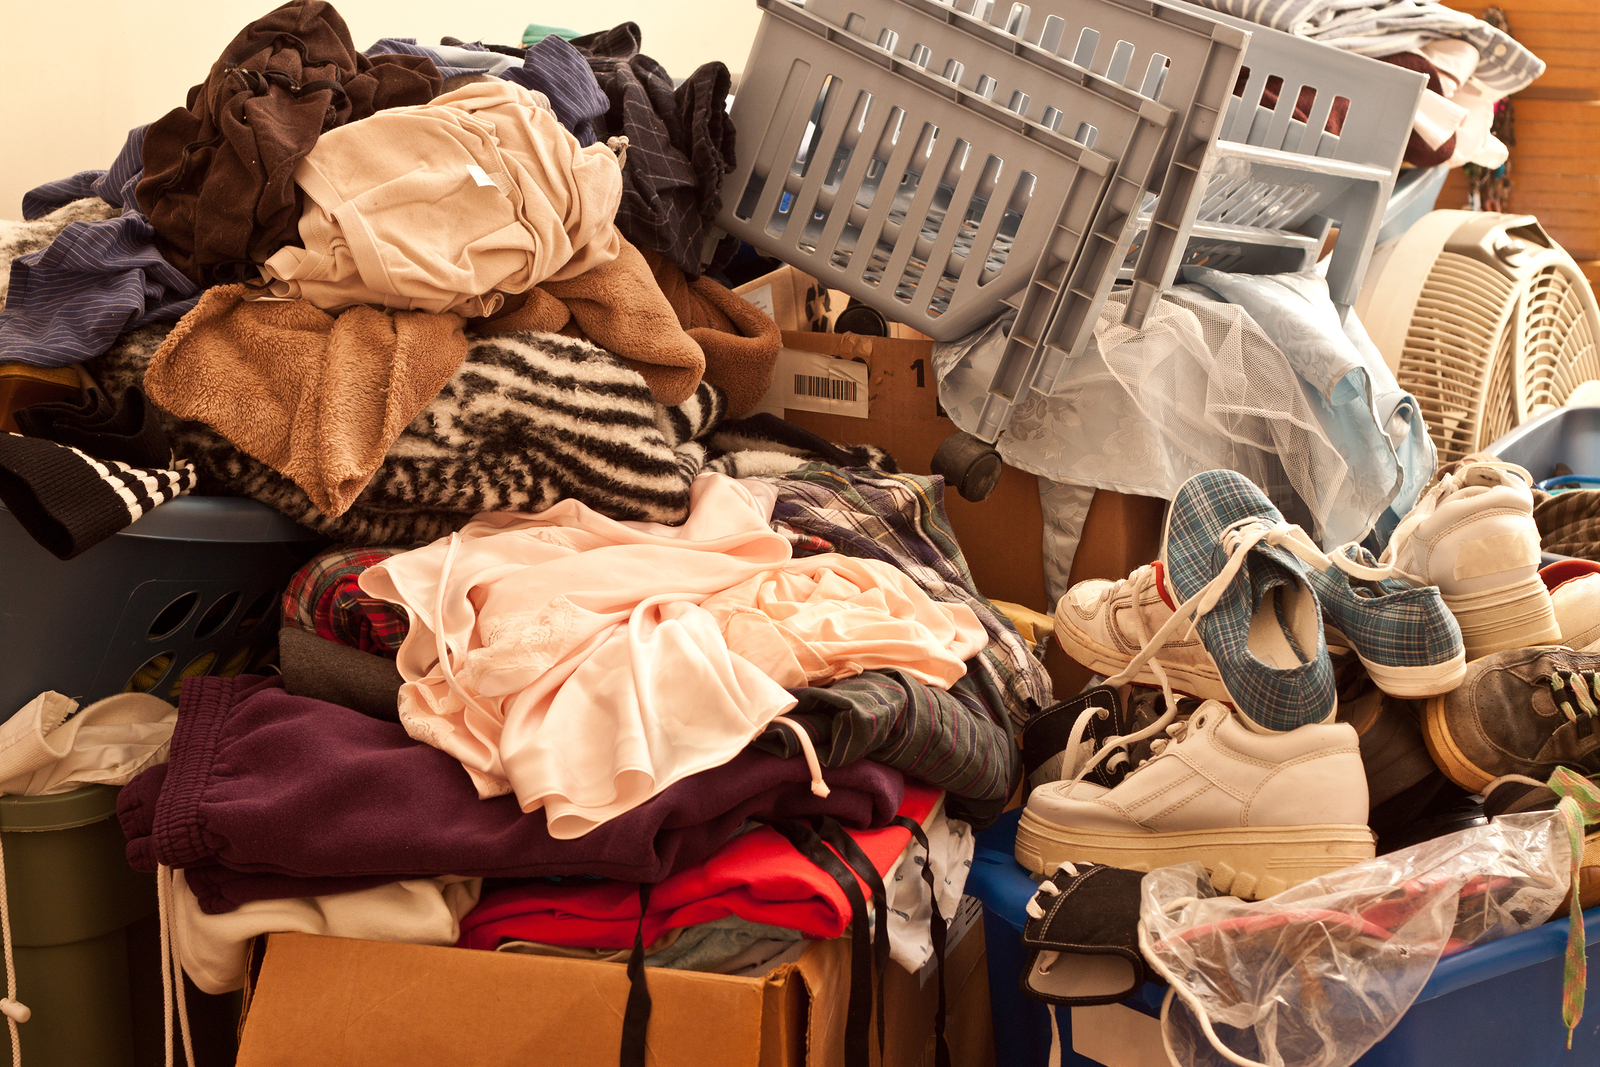 the psychology behind hoarding | psychology today